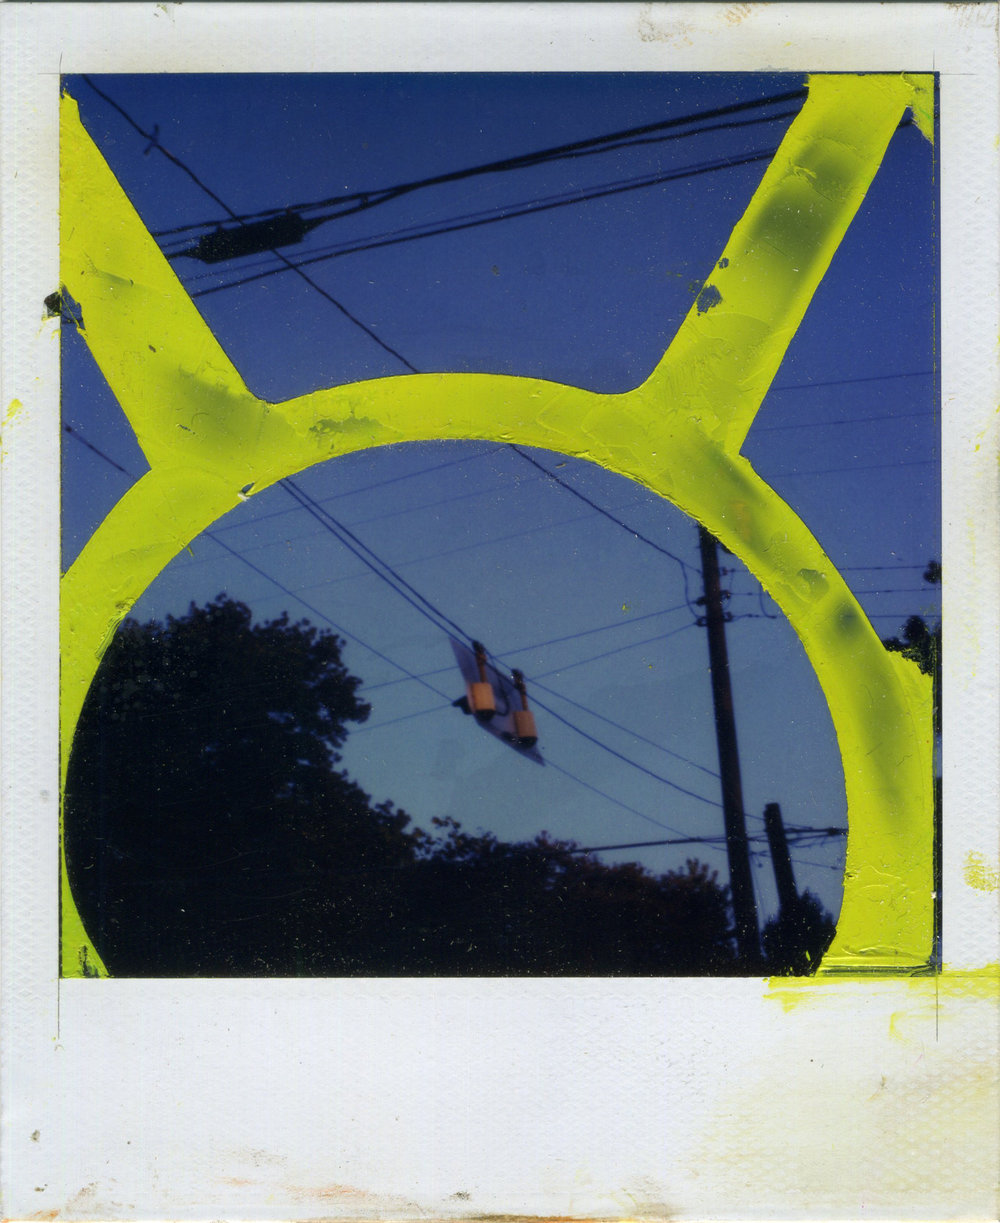 "INTERSECTION (ANTENNAE)   oil on sx-70 Polaroid | 3.25"" x 4.25"" 